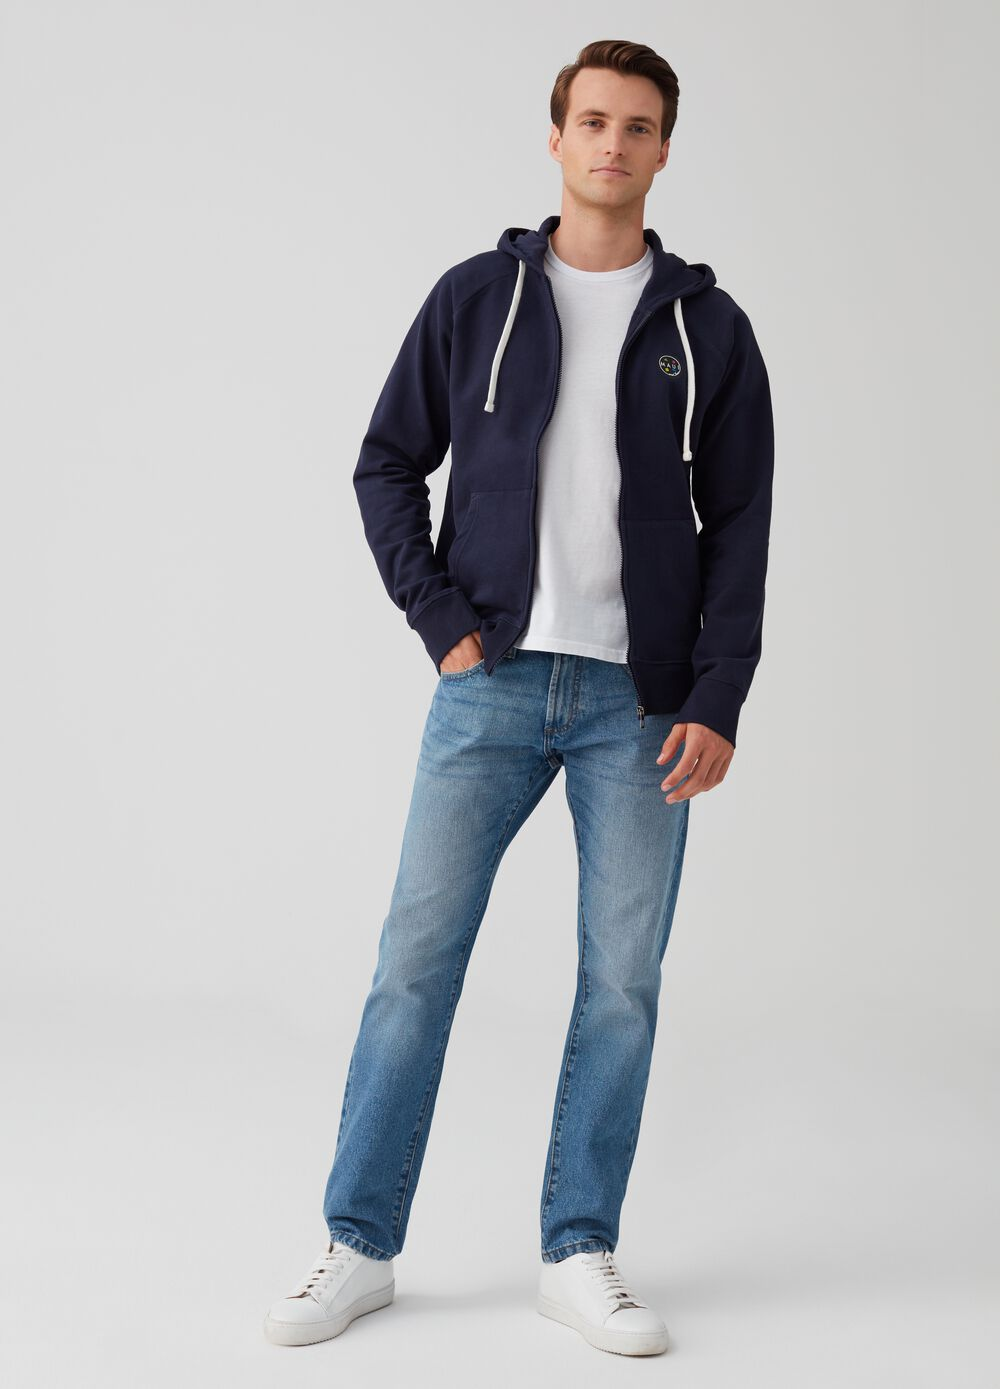 100% cotton sweatshirt by Maui and Sons